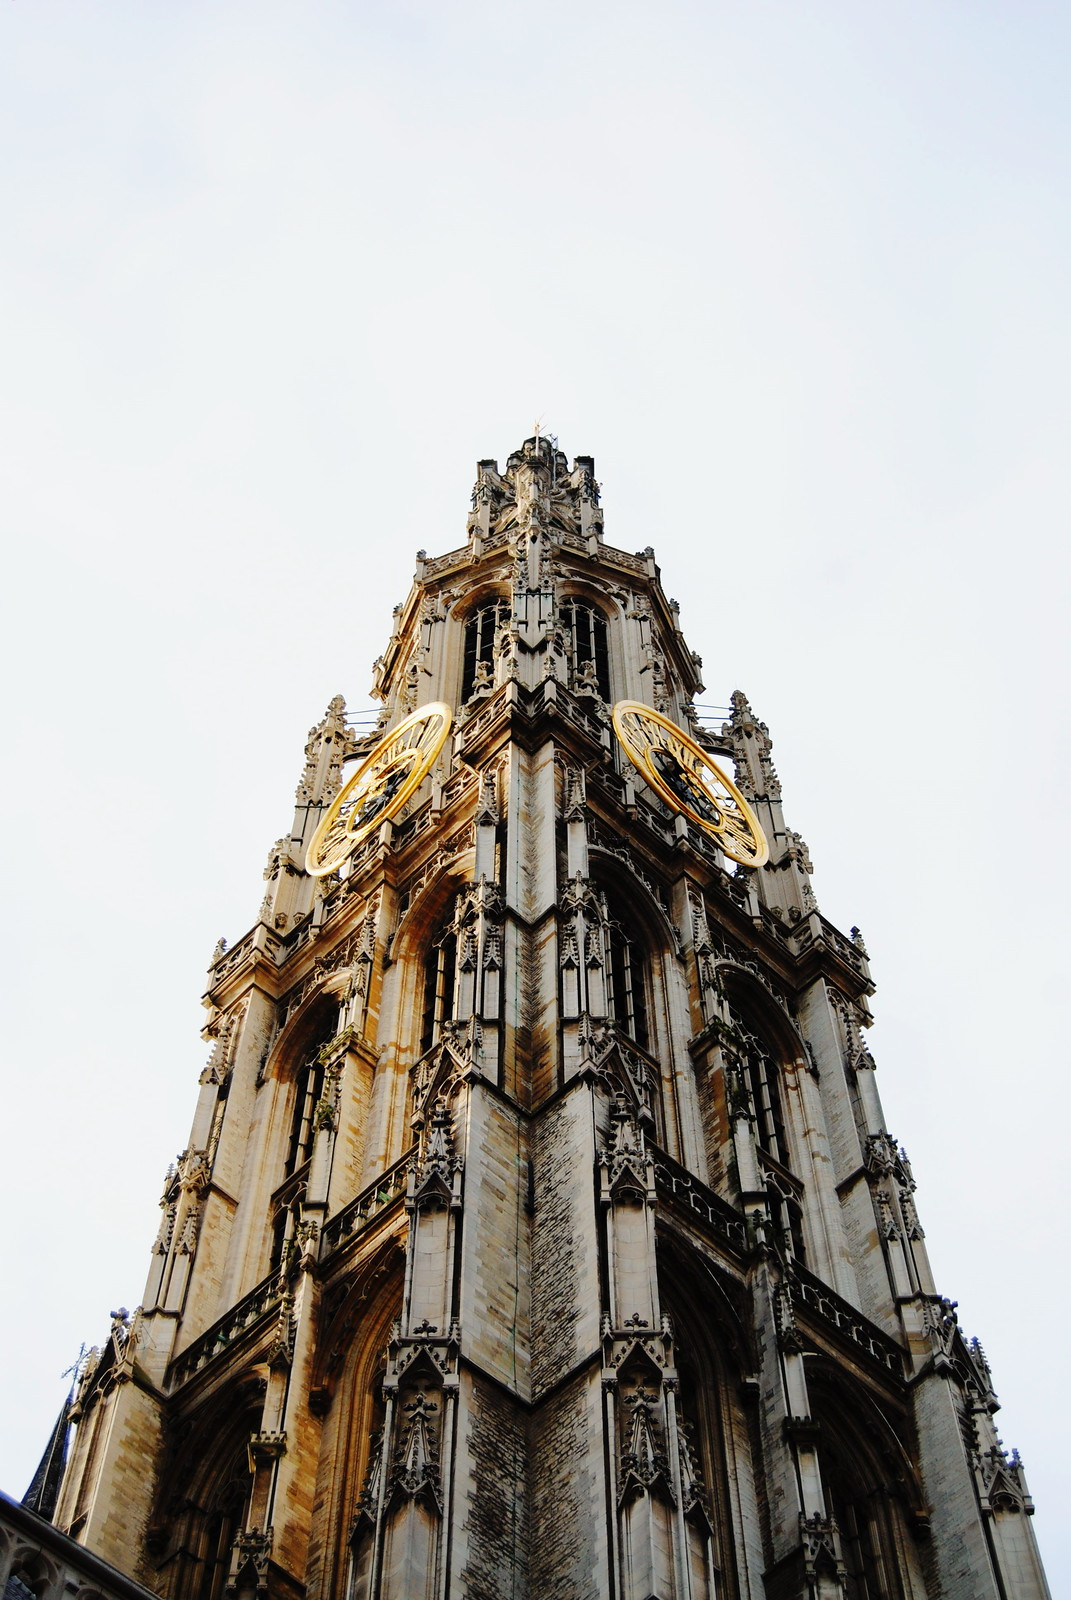 The tower of the cathedral in Antwerp.